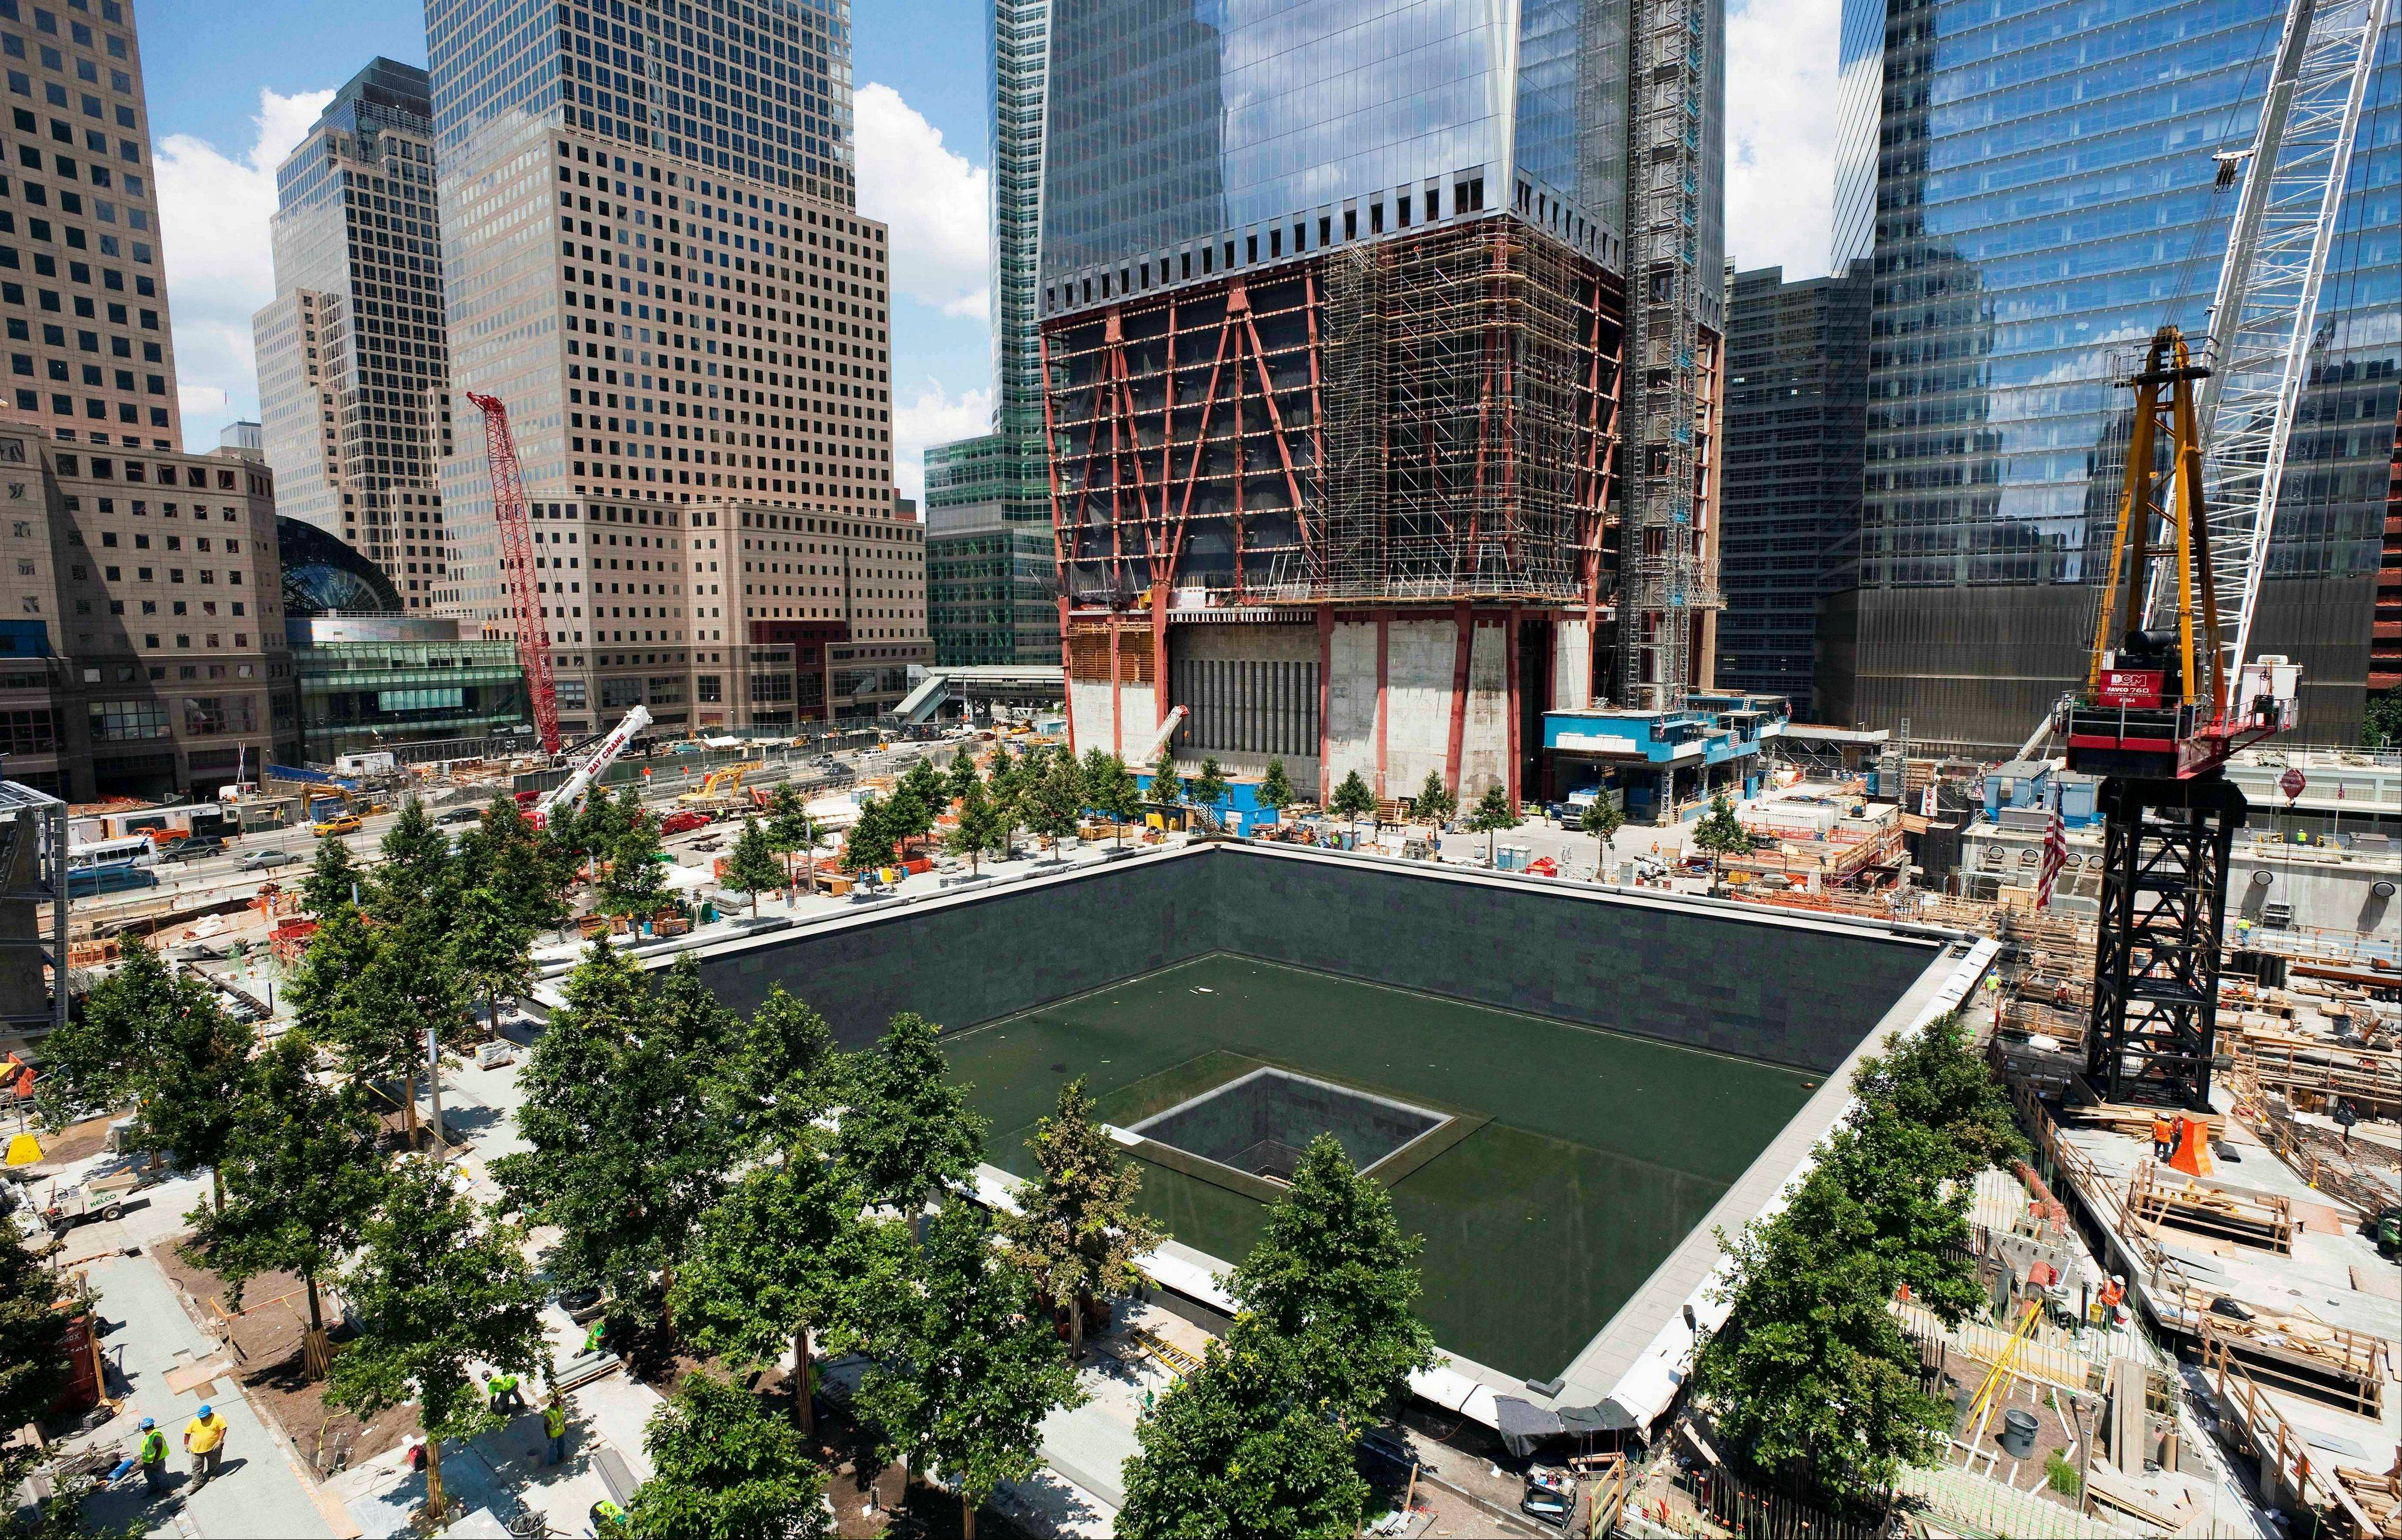 In this July 15, 2011 file photo, work continues on the National September 11 Memorial at the World Trade Center site in New York. The memorial is scheduled to open to the public on Sept. 12, 2011.